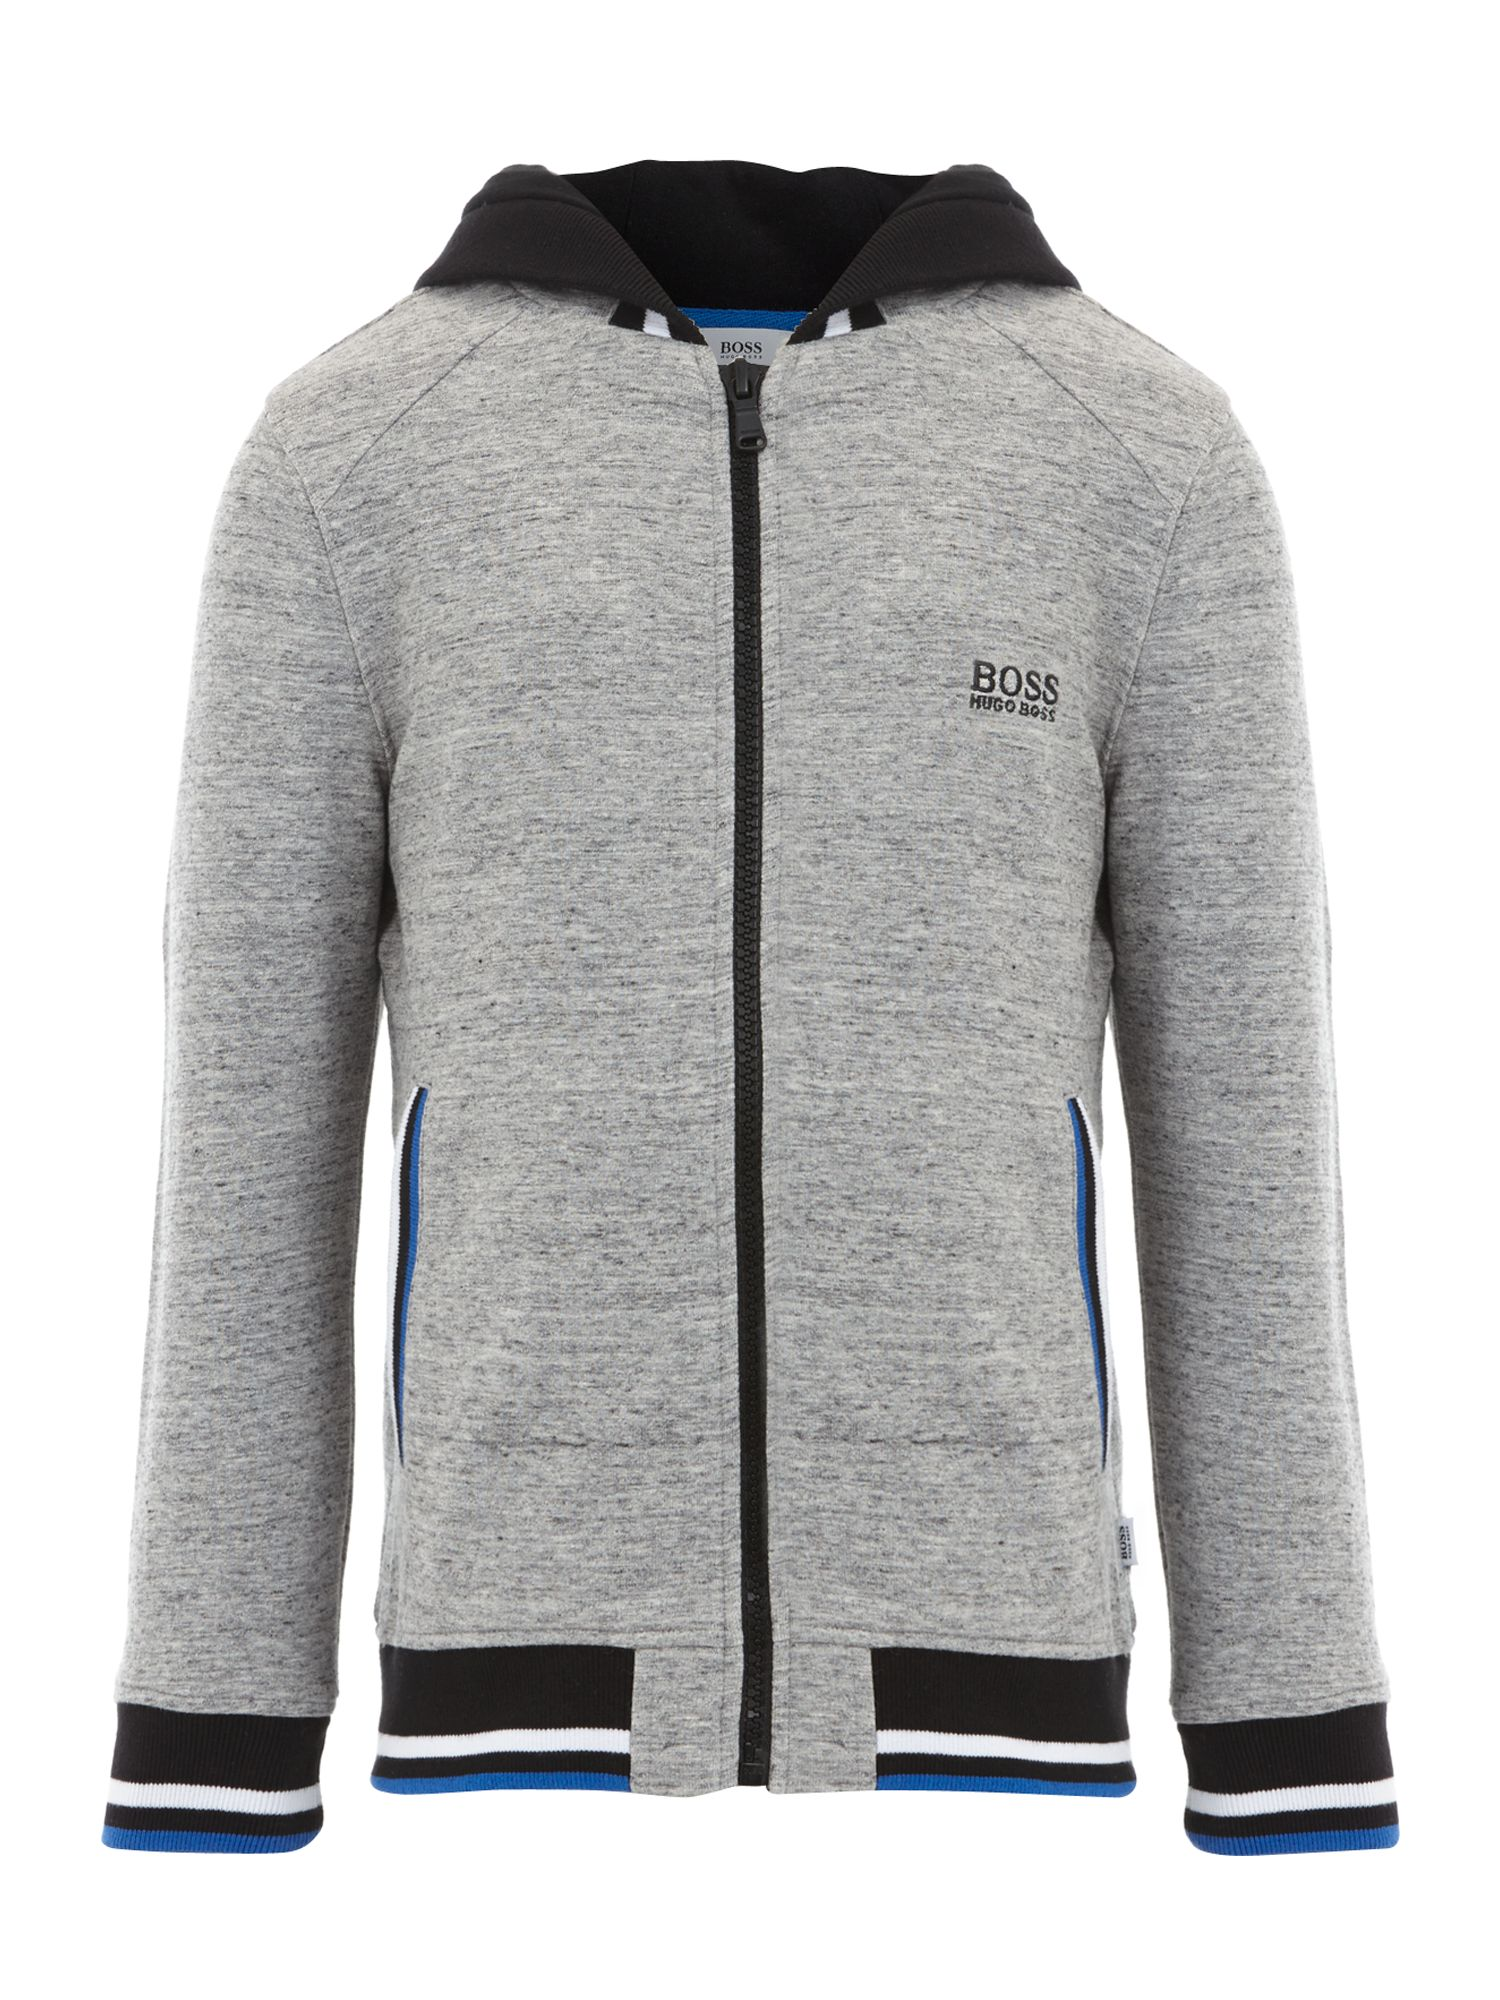 Boy`s hooded zip up top